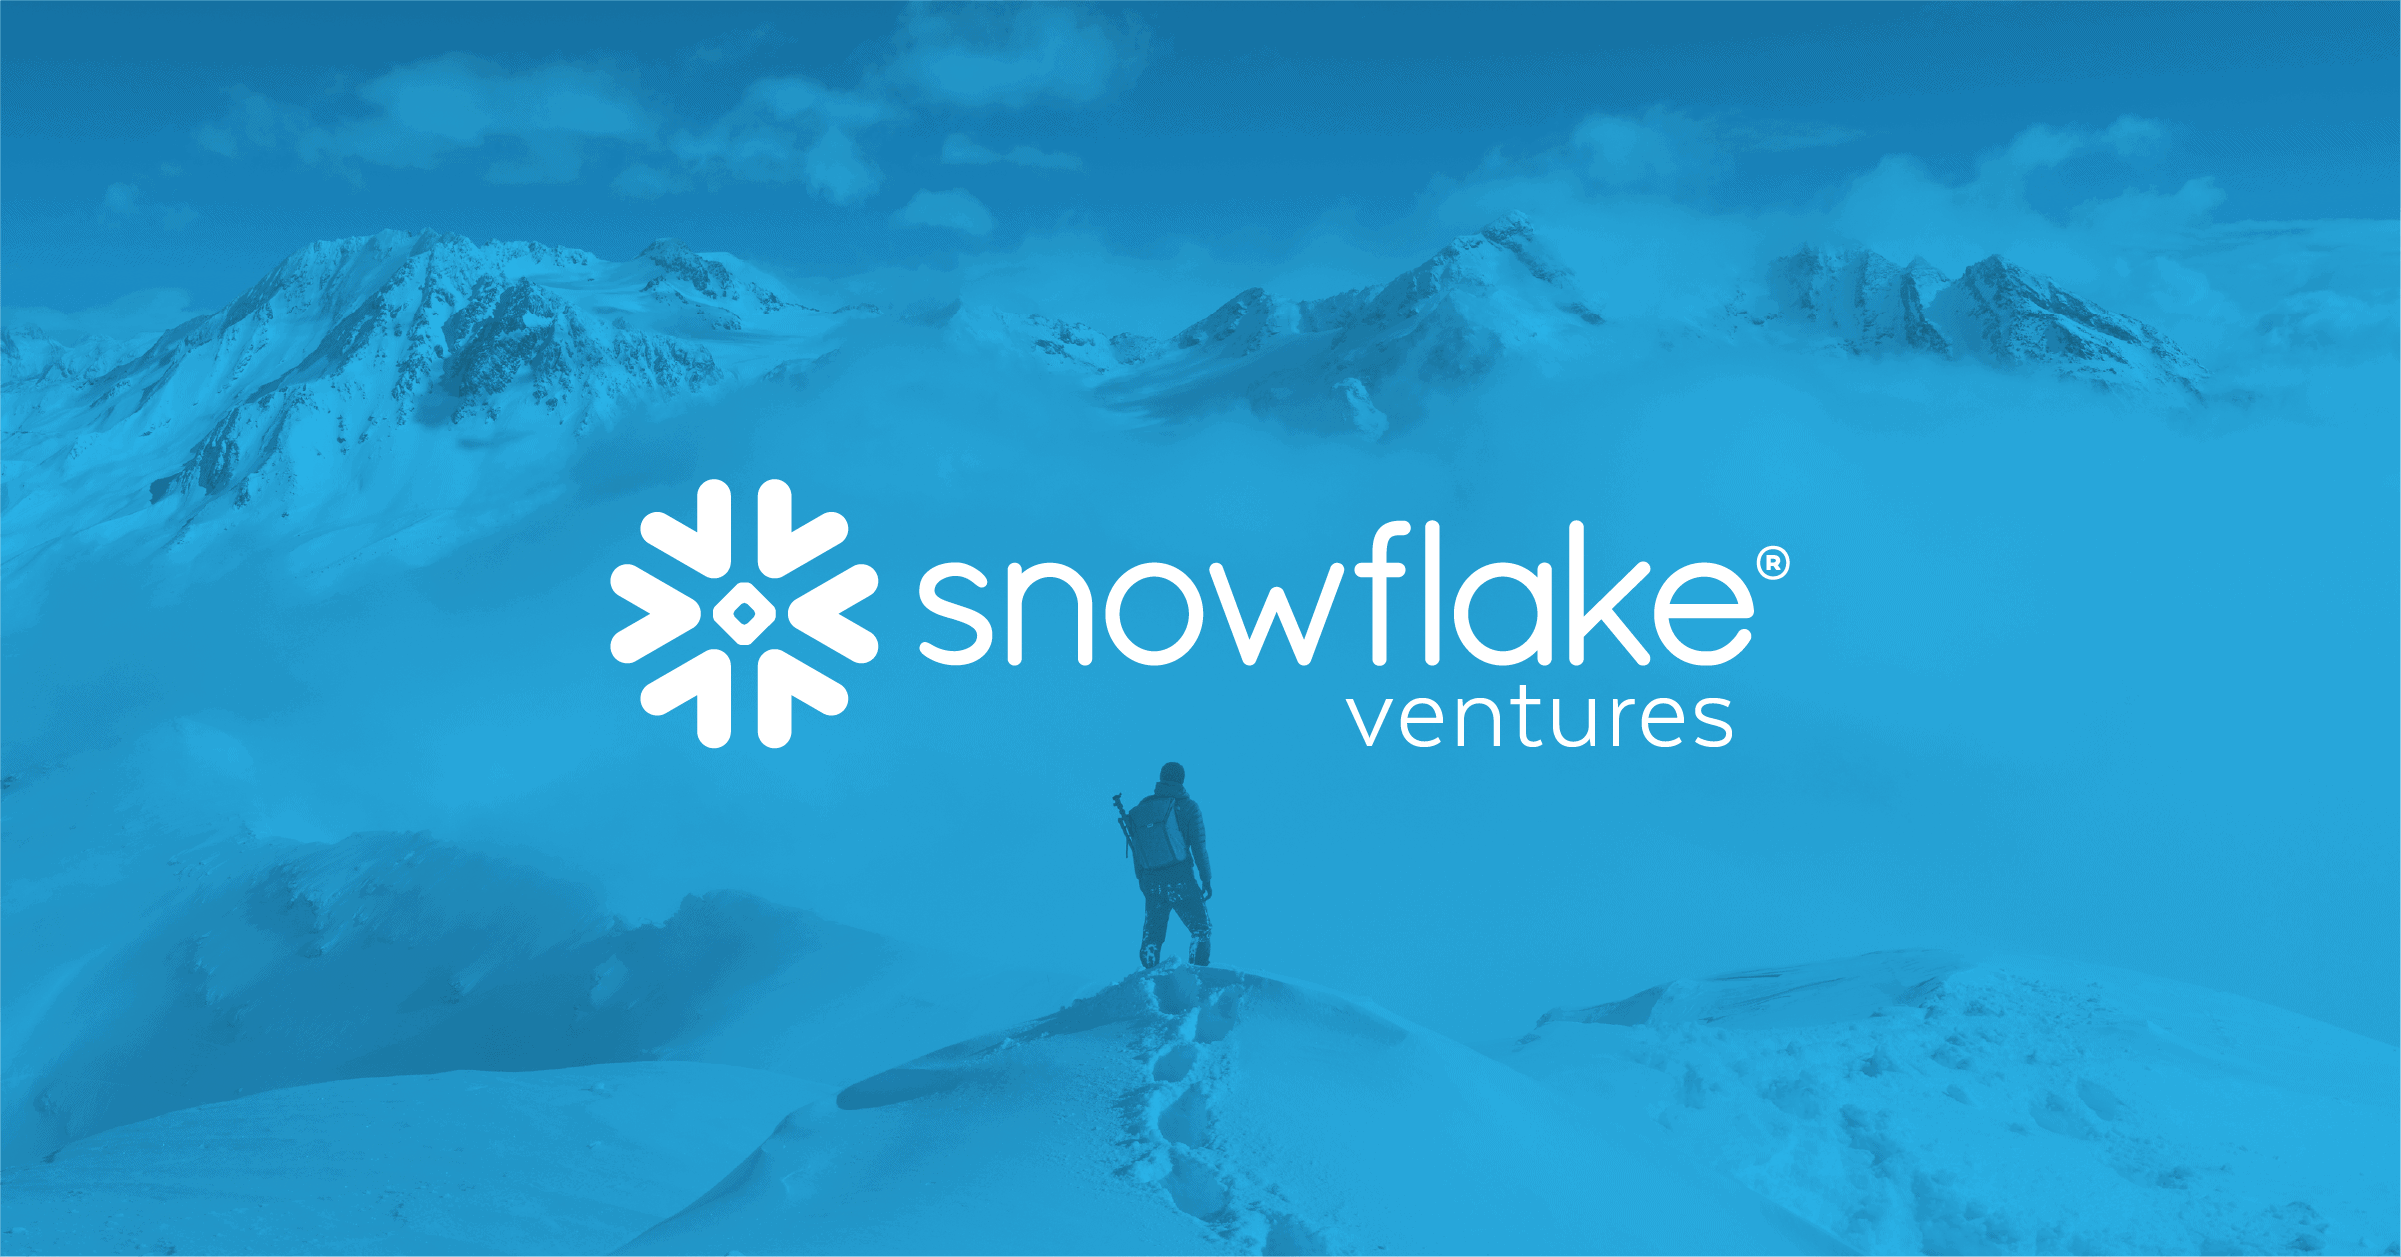 Snowflake Ventures Invests in DataRobot to Supercharge Machine Learning in the Snowflake Data Cloud